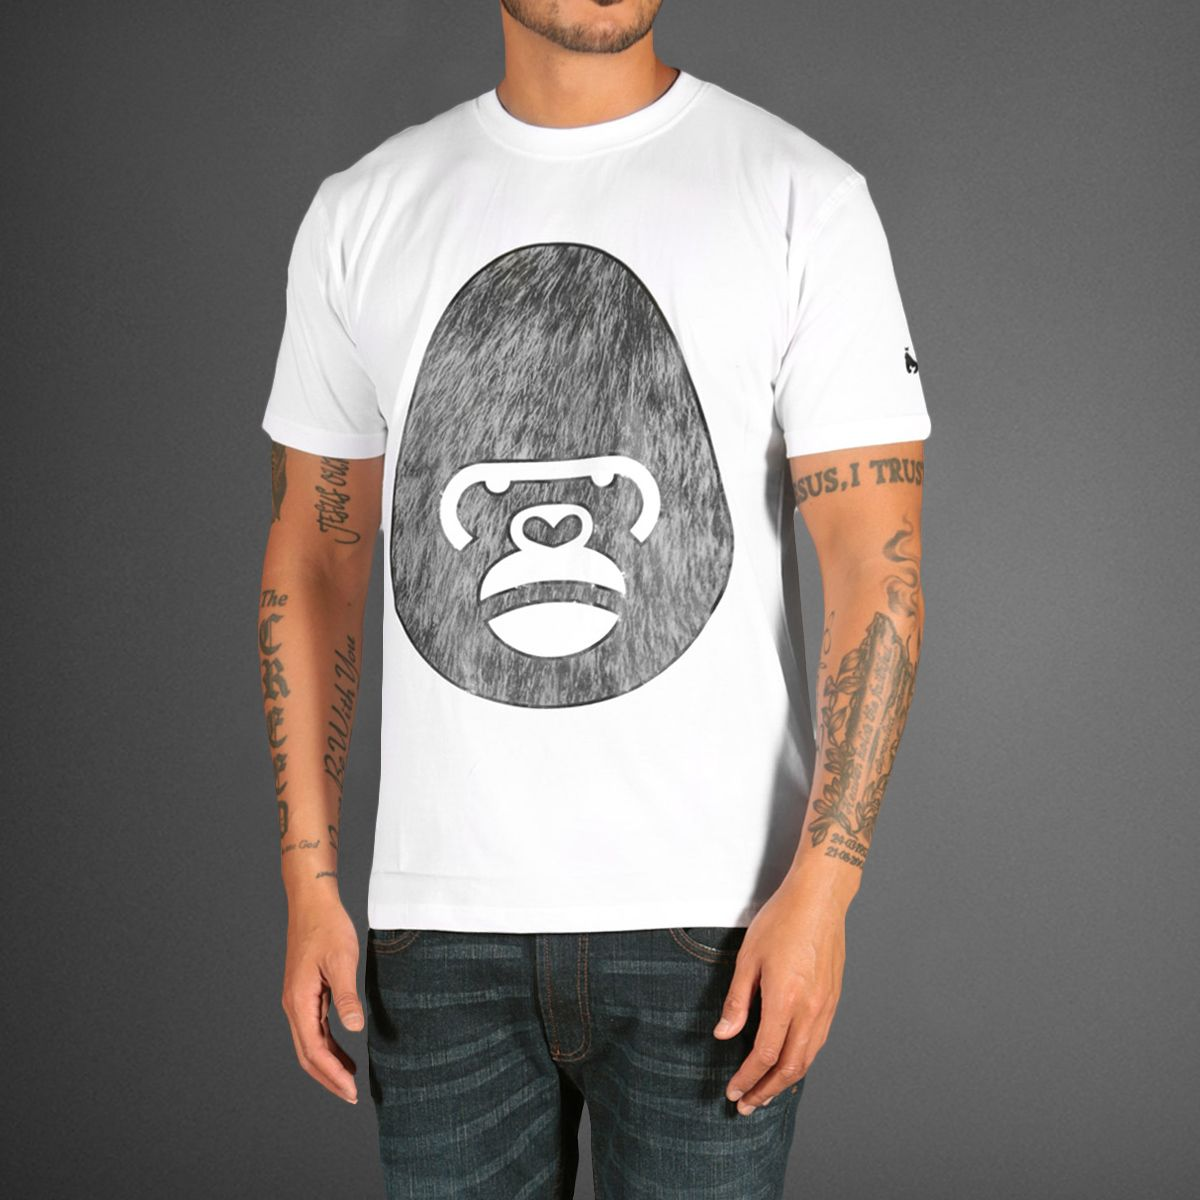 06d8a412 Gorilla T-Shirts | Money Clothing George Gorilla Fur T-Shirt - WEHUSTLE |  MENSWEAR .